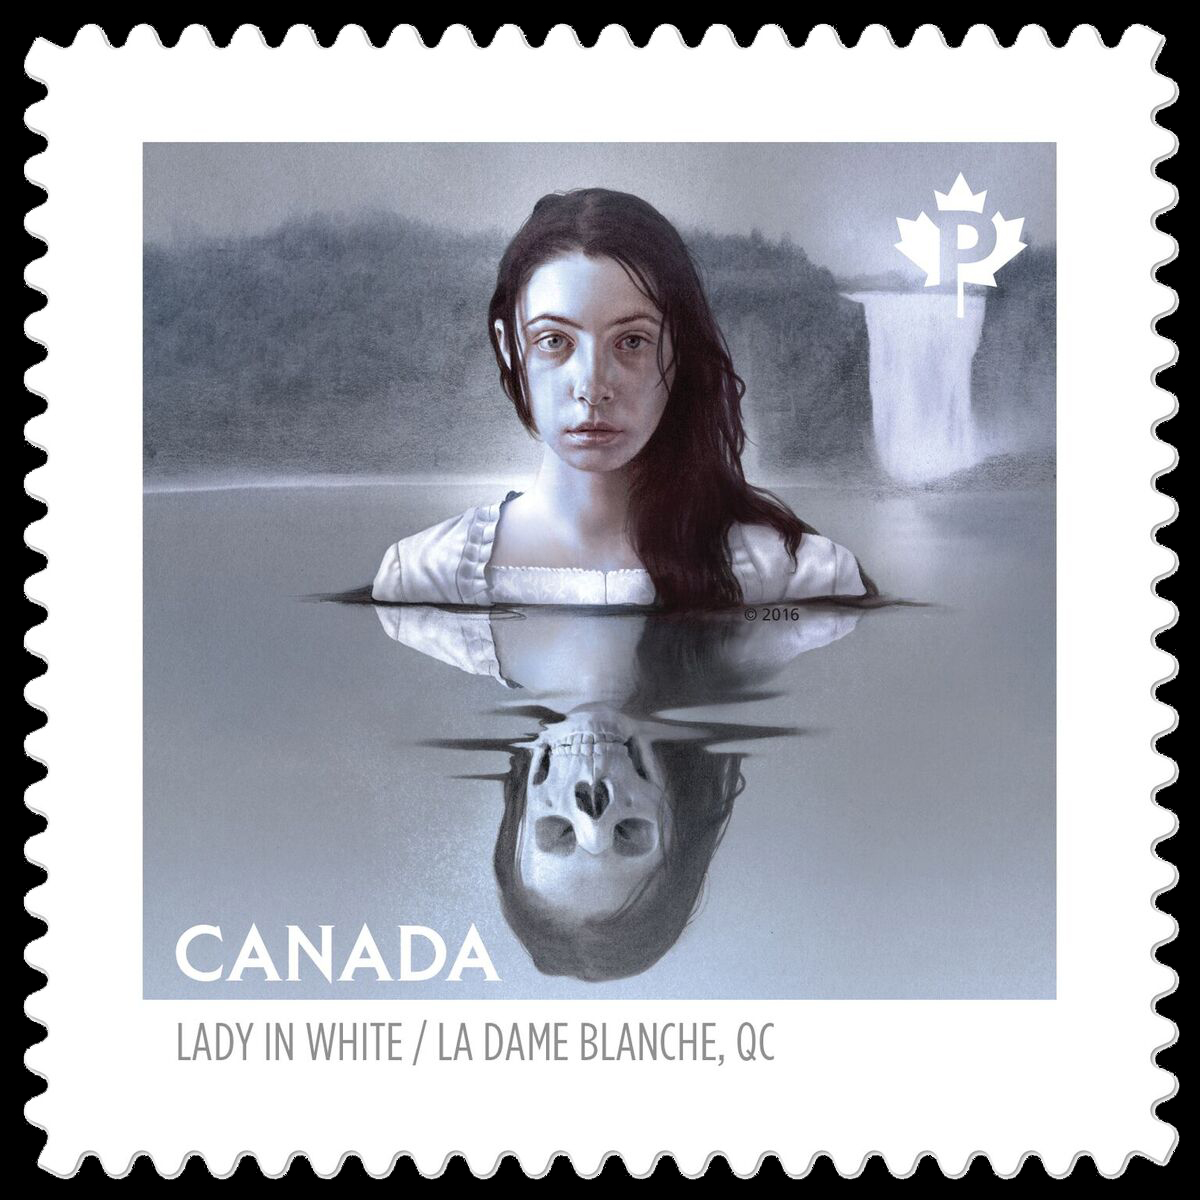 A Canada stamp of Quebec's la dame blanche, a portrait of a woman submerged in water from her bust up, with long black hair. Her reflection is a skeleton. Behind her are the falls.